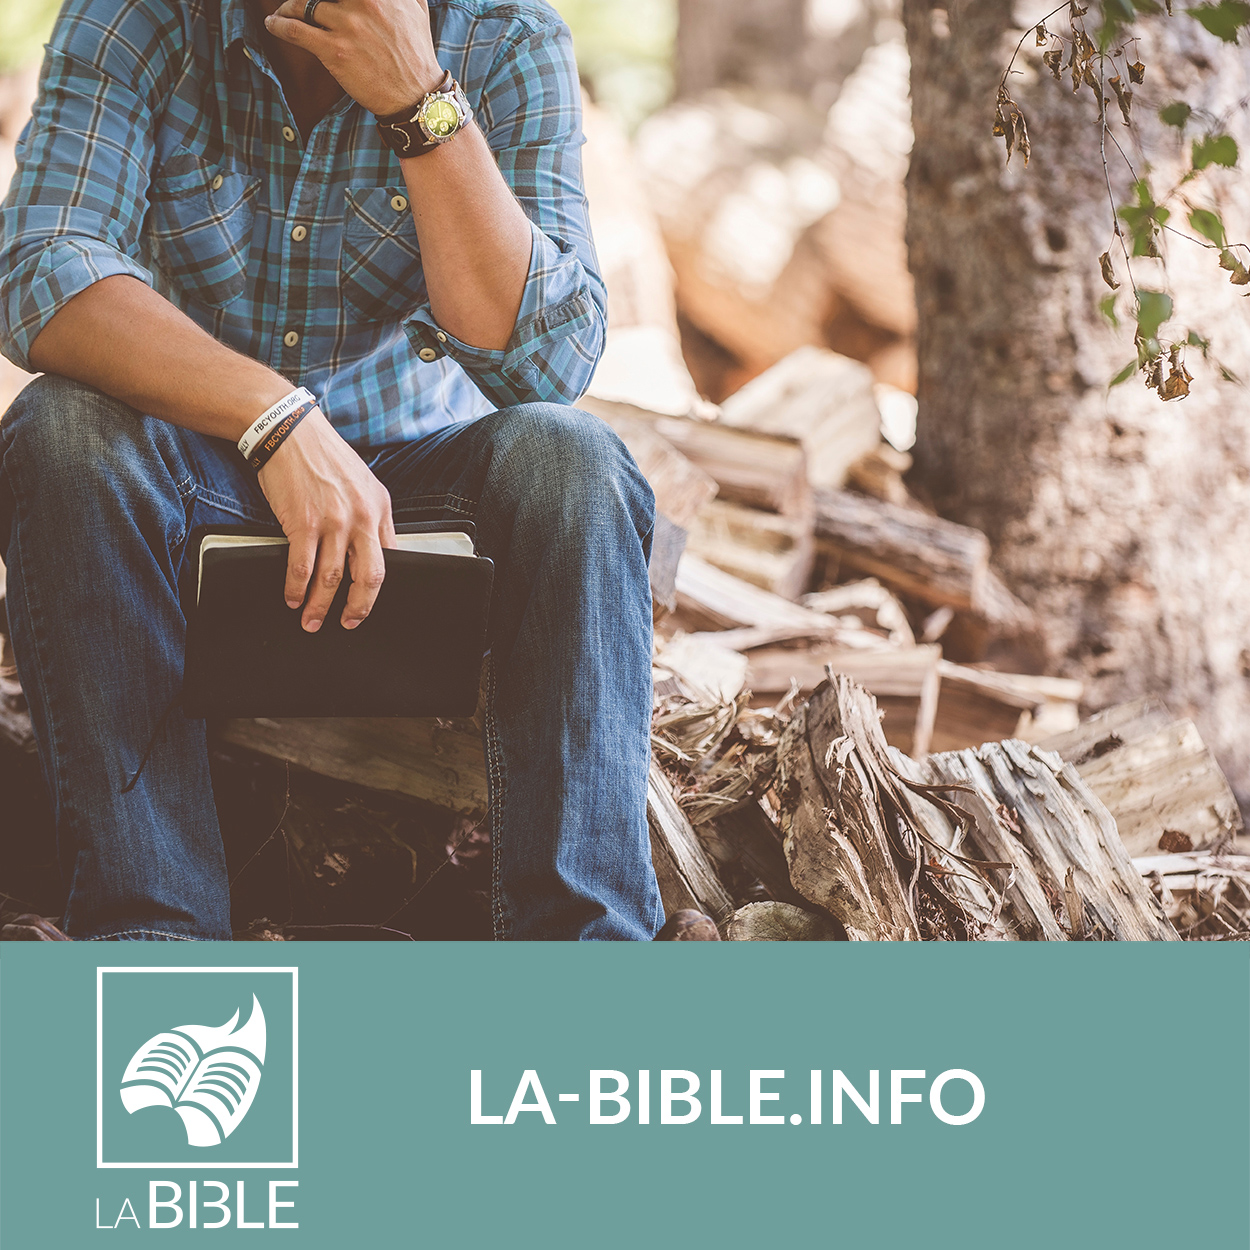 bibledigital_labible.jpg